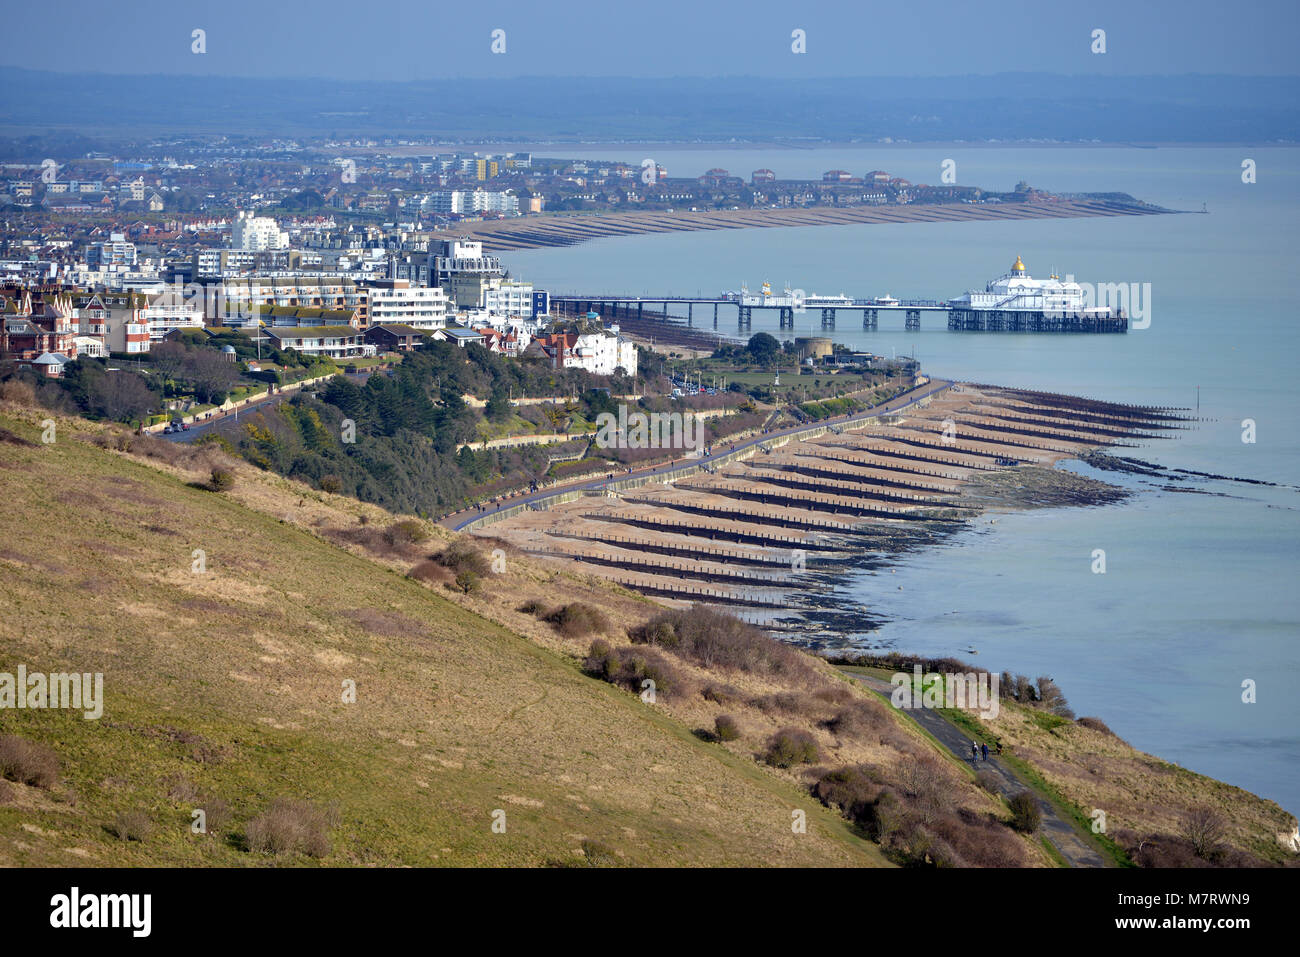 Eastbourne, East Sussex, seen near the end point of the South Downs Way near Beachy Head. - Stock Image